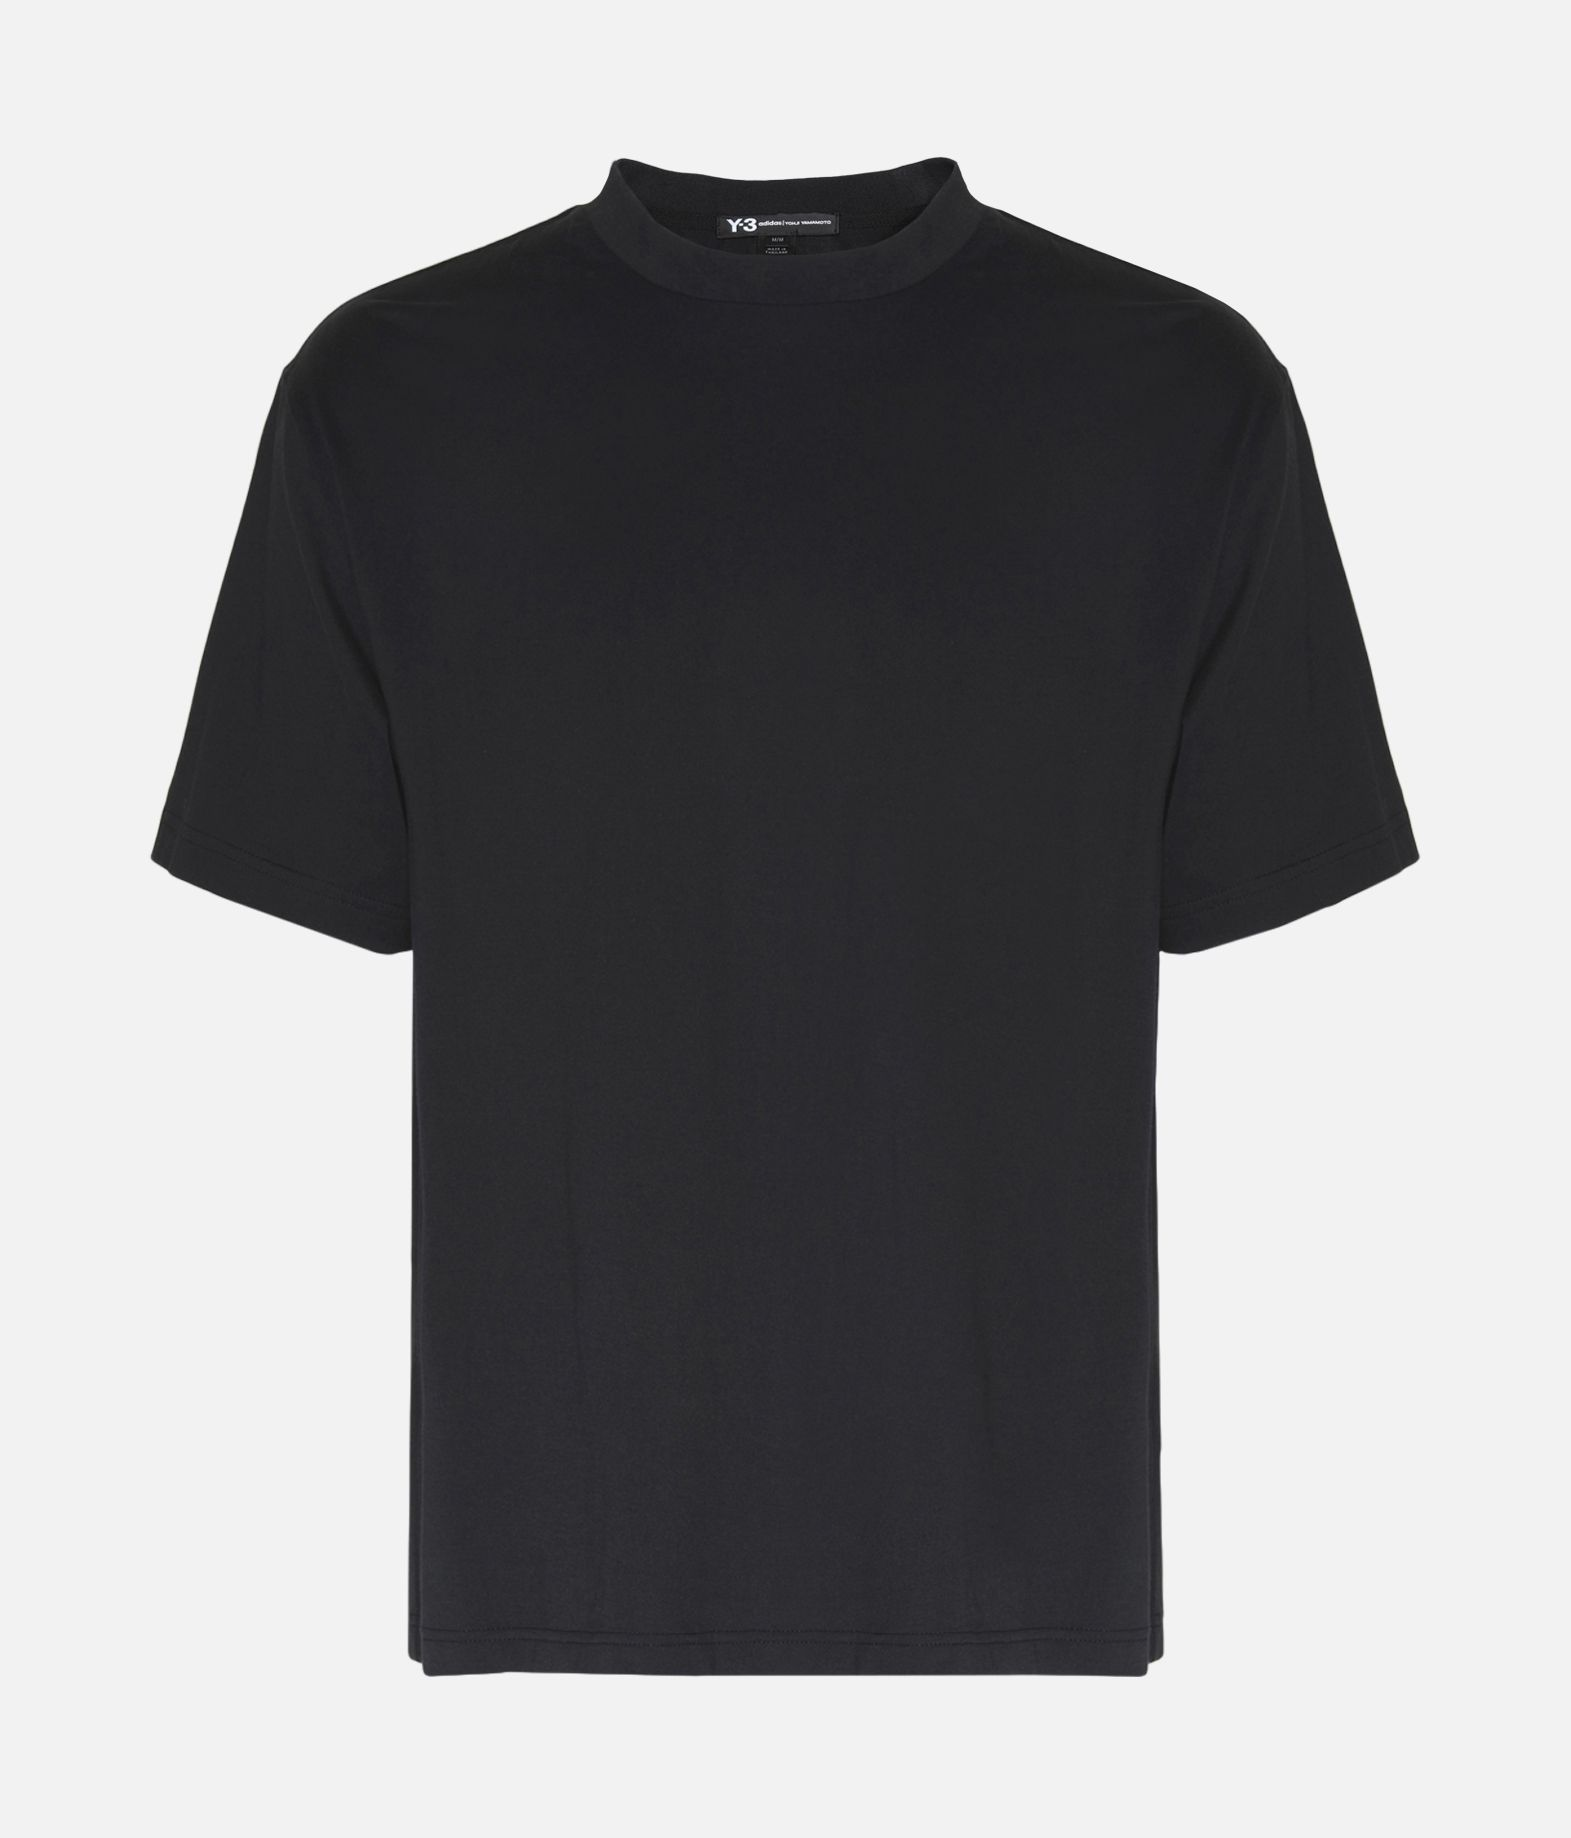 Y-3 Y-3 Signature Graphic Tee T シャツ メンズ f